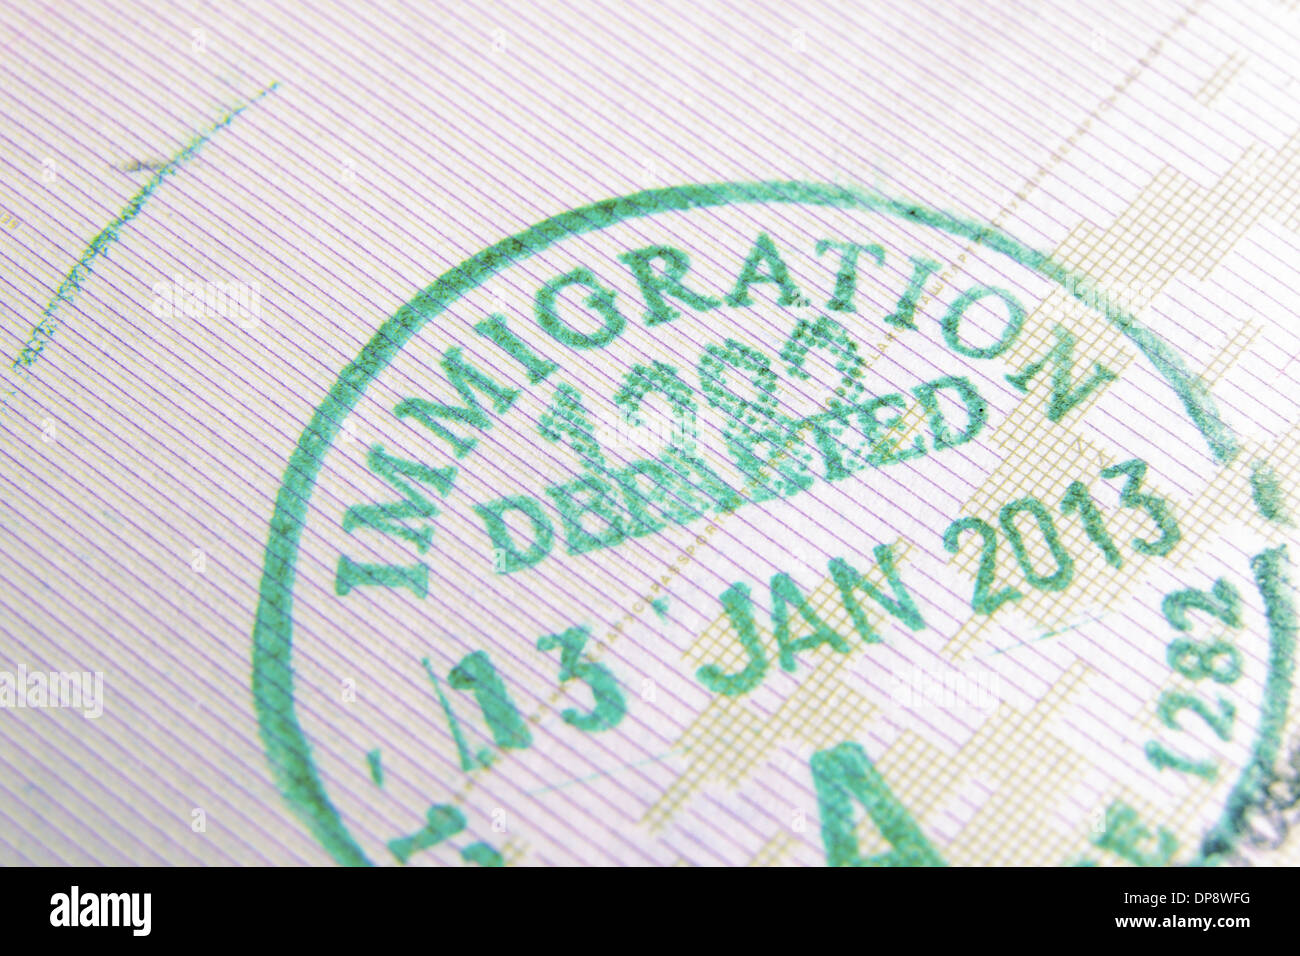 immigration control passport stamp fragment; focus on Immigration word - Stock Image